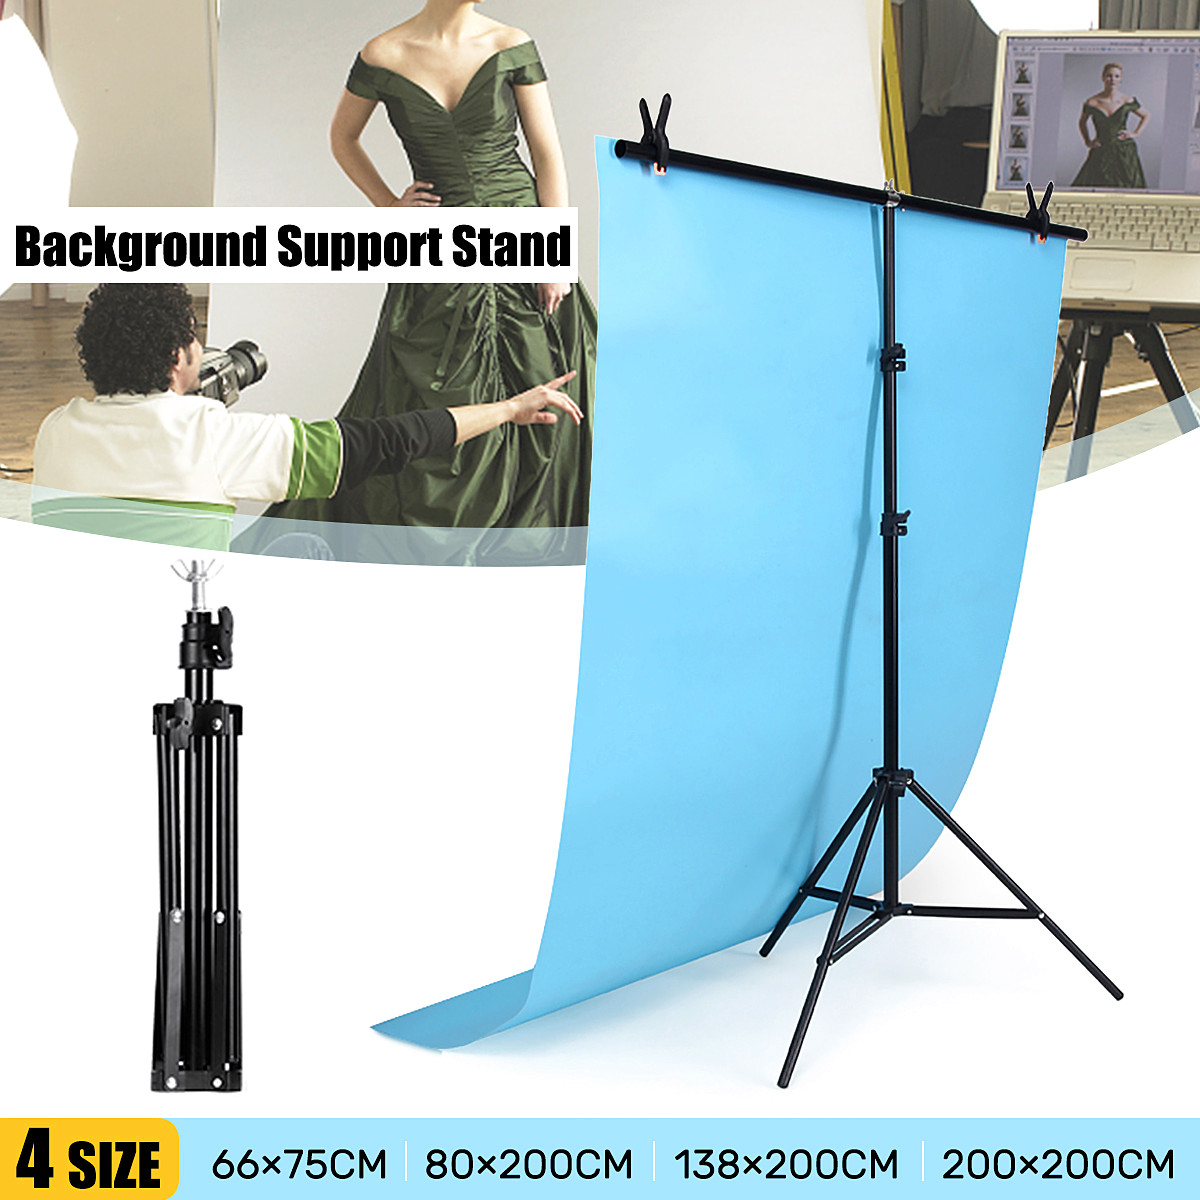 Newest 4 Sizes T-type Adjustable Background Frame Support Stand Metal Holder Photo Studio Backdrop System Photography Equipment Newest 4 Sizes T-type Adjustable Background Frame Support Stand Metal Holder Photo Studio Backdrop System Photography Equipment